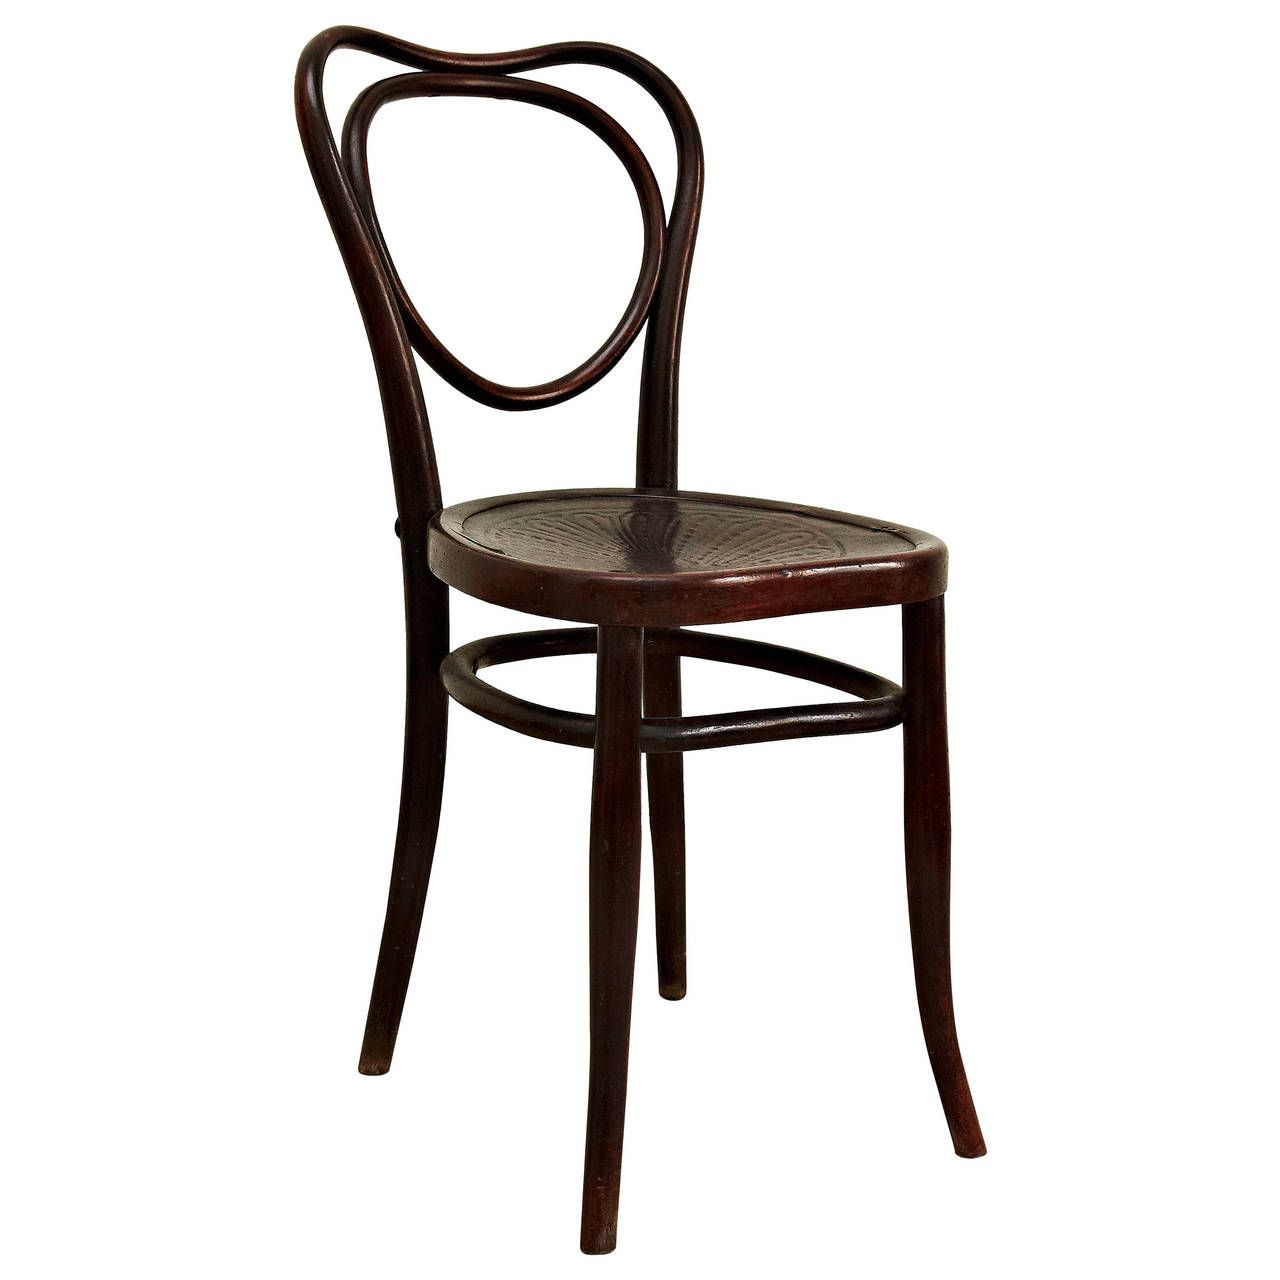 Bentwood chair modern - J J Kohn Bentwood Chair Circa 1880 Austria From A Unique Collection Of Antique